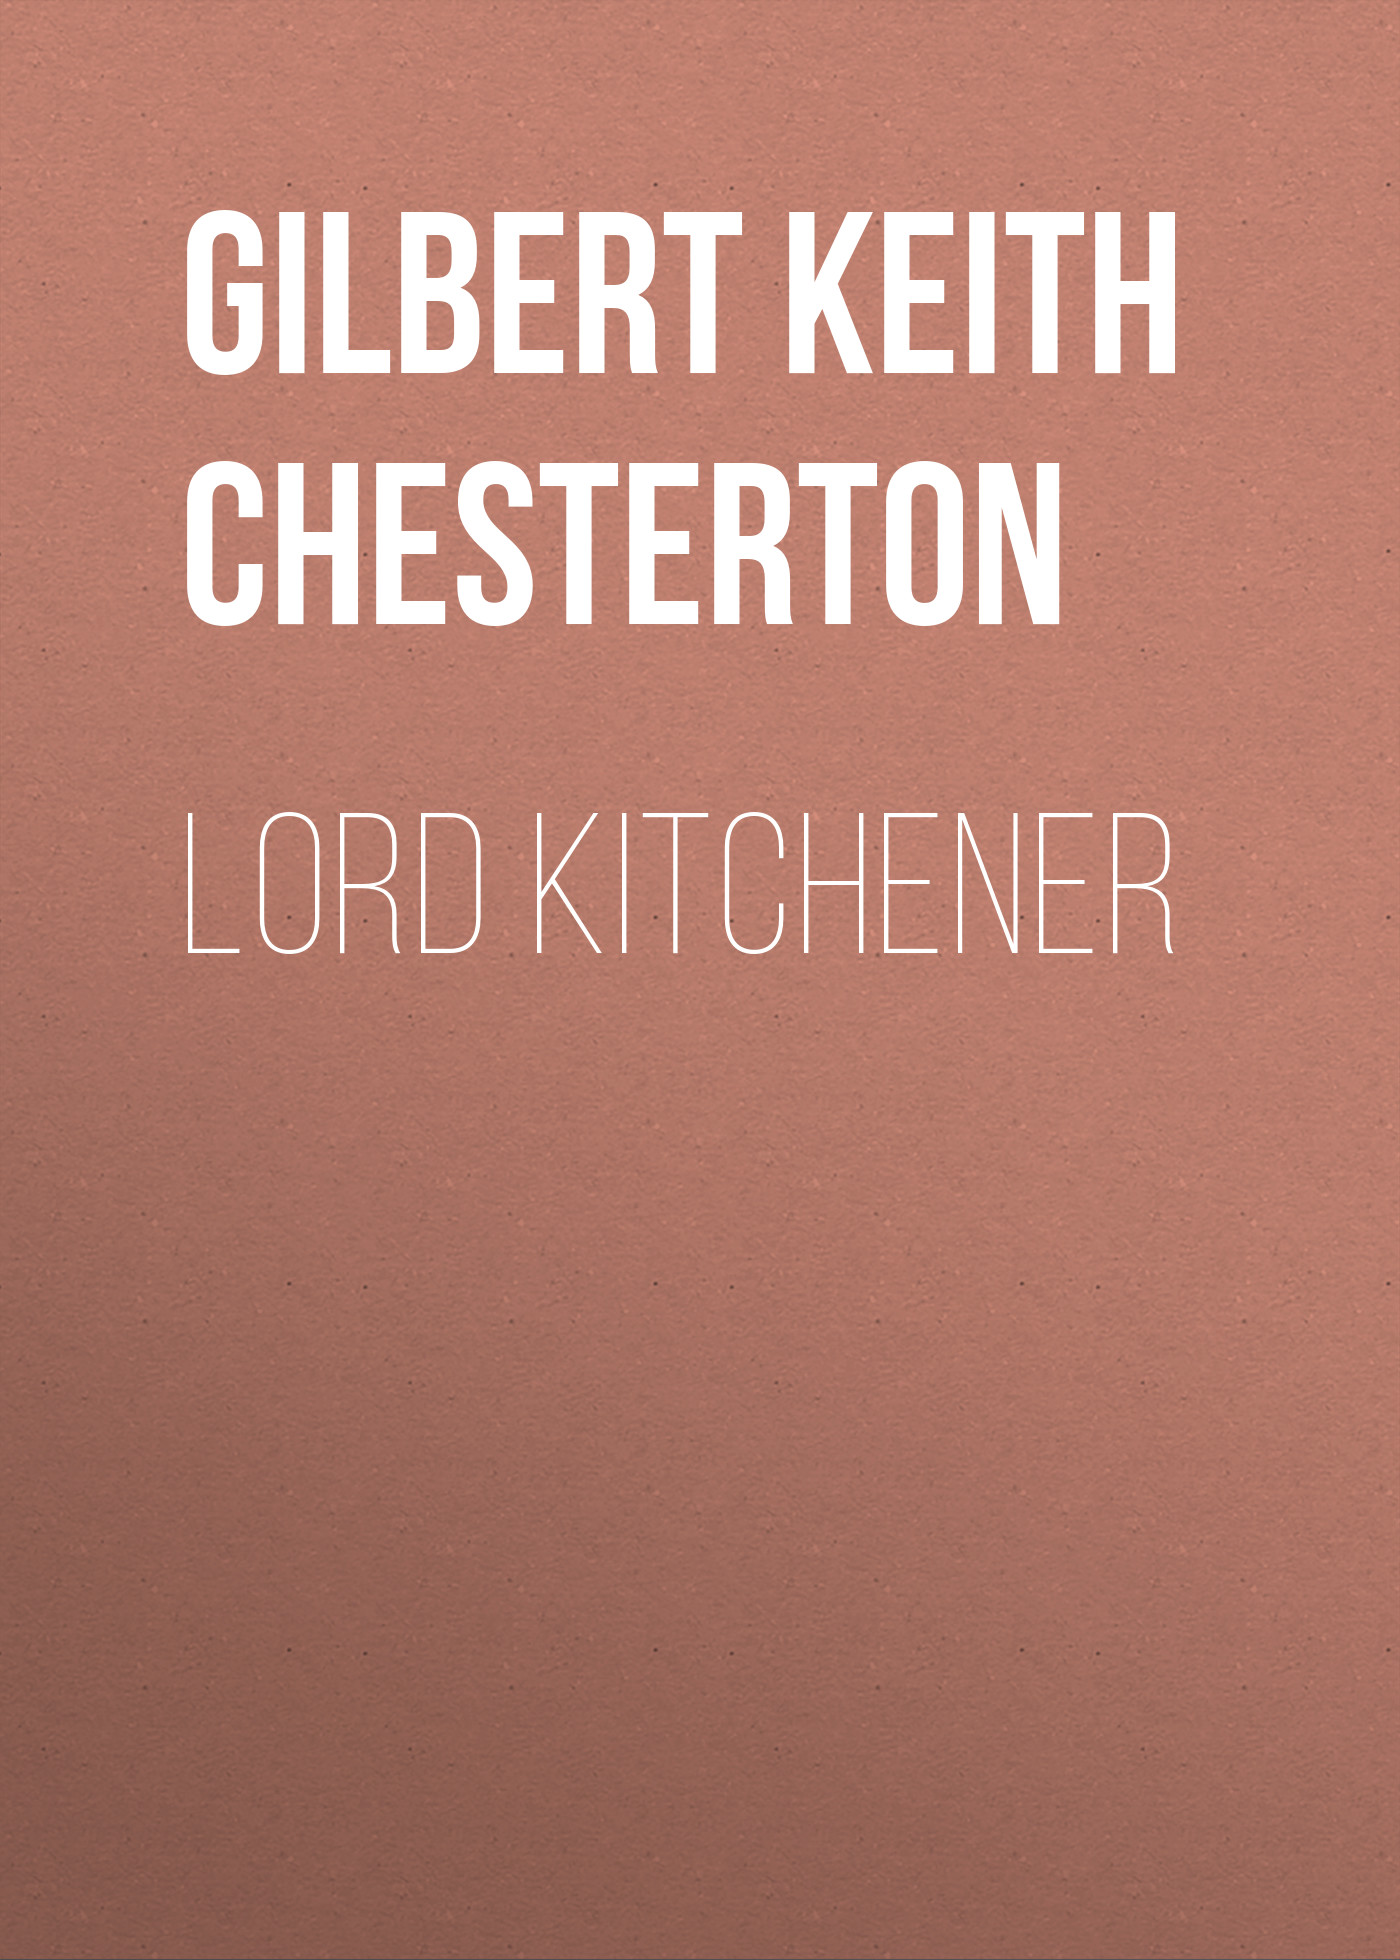 Gilbert Keith Chesterton Lord Kitchener atlantic часы atlantic 62455 41 61 коллекция sealine